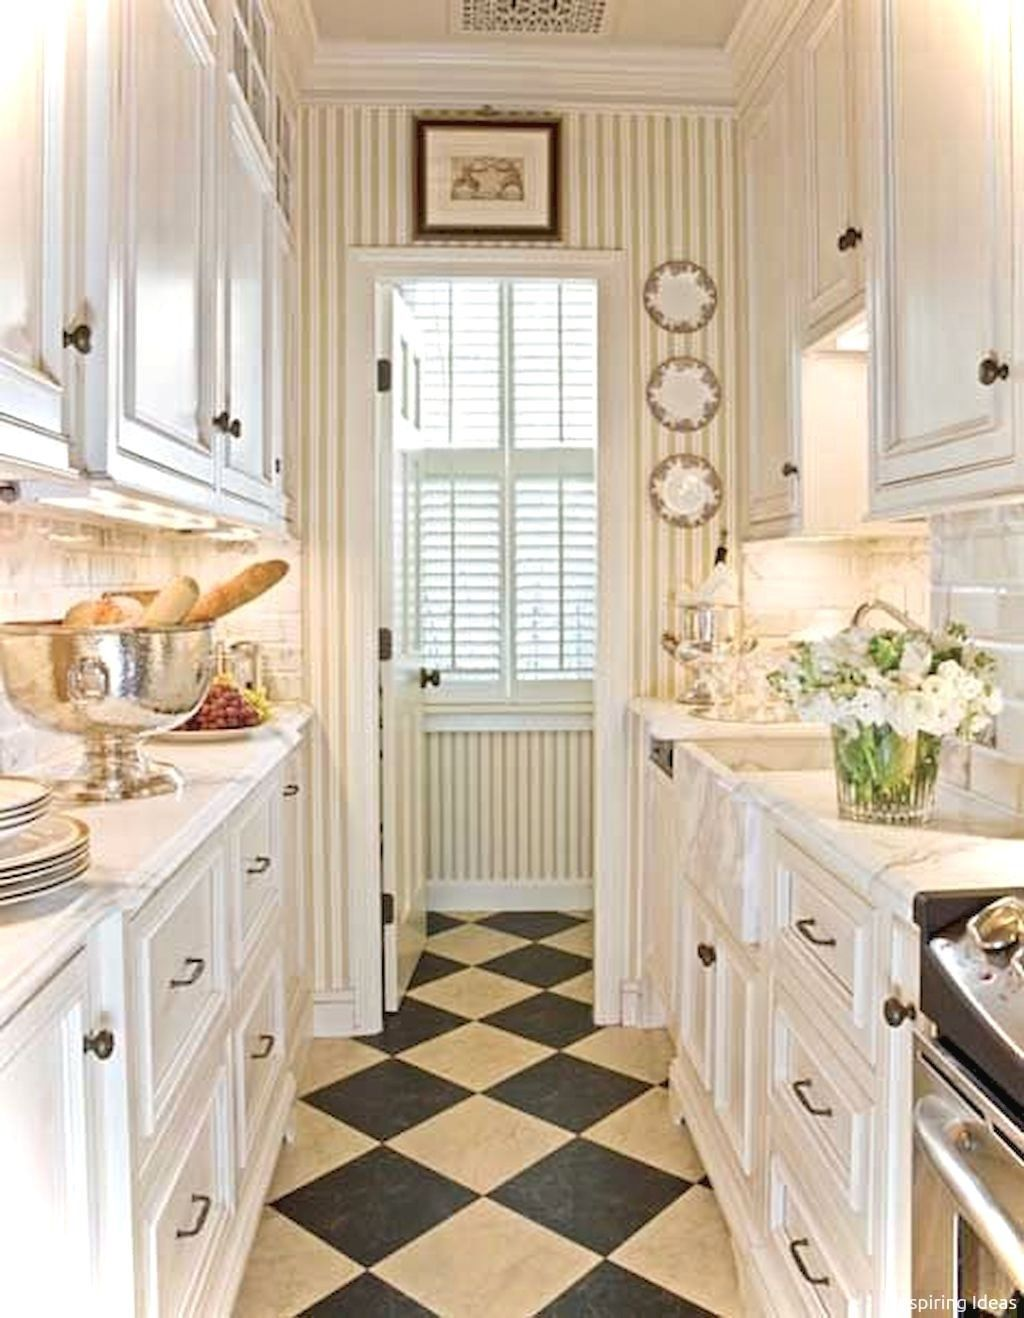 54 Little Kitchen Ideas French Country Style Galley Kitchen Design Kitchen Design Small Kitchen Inspirations